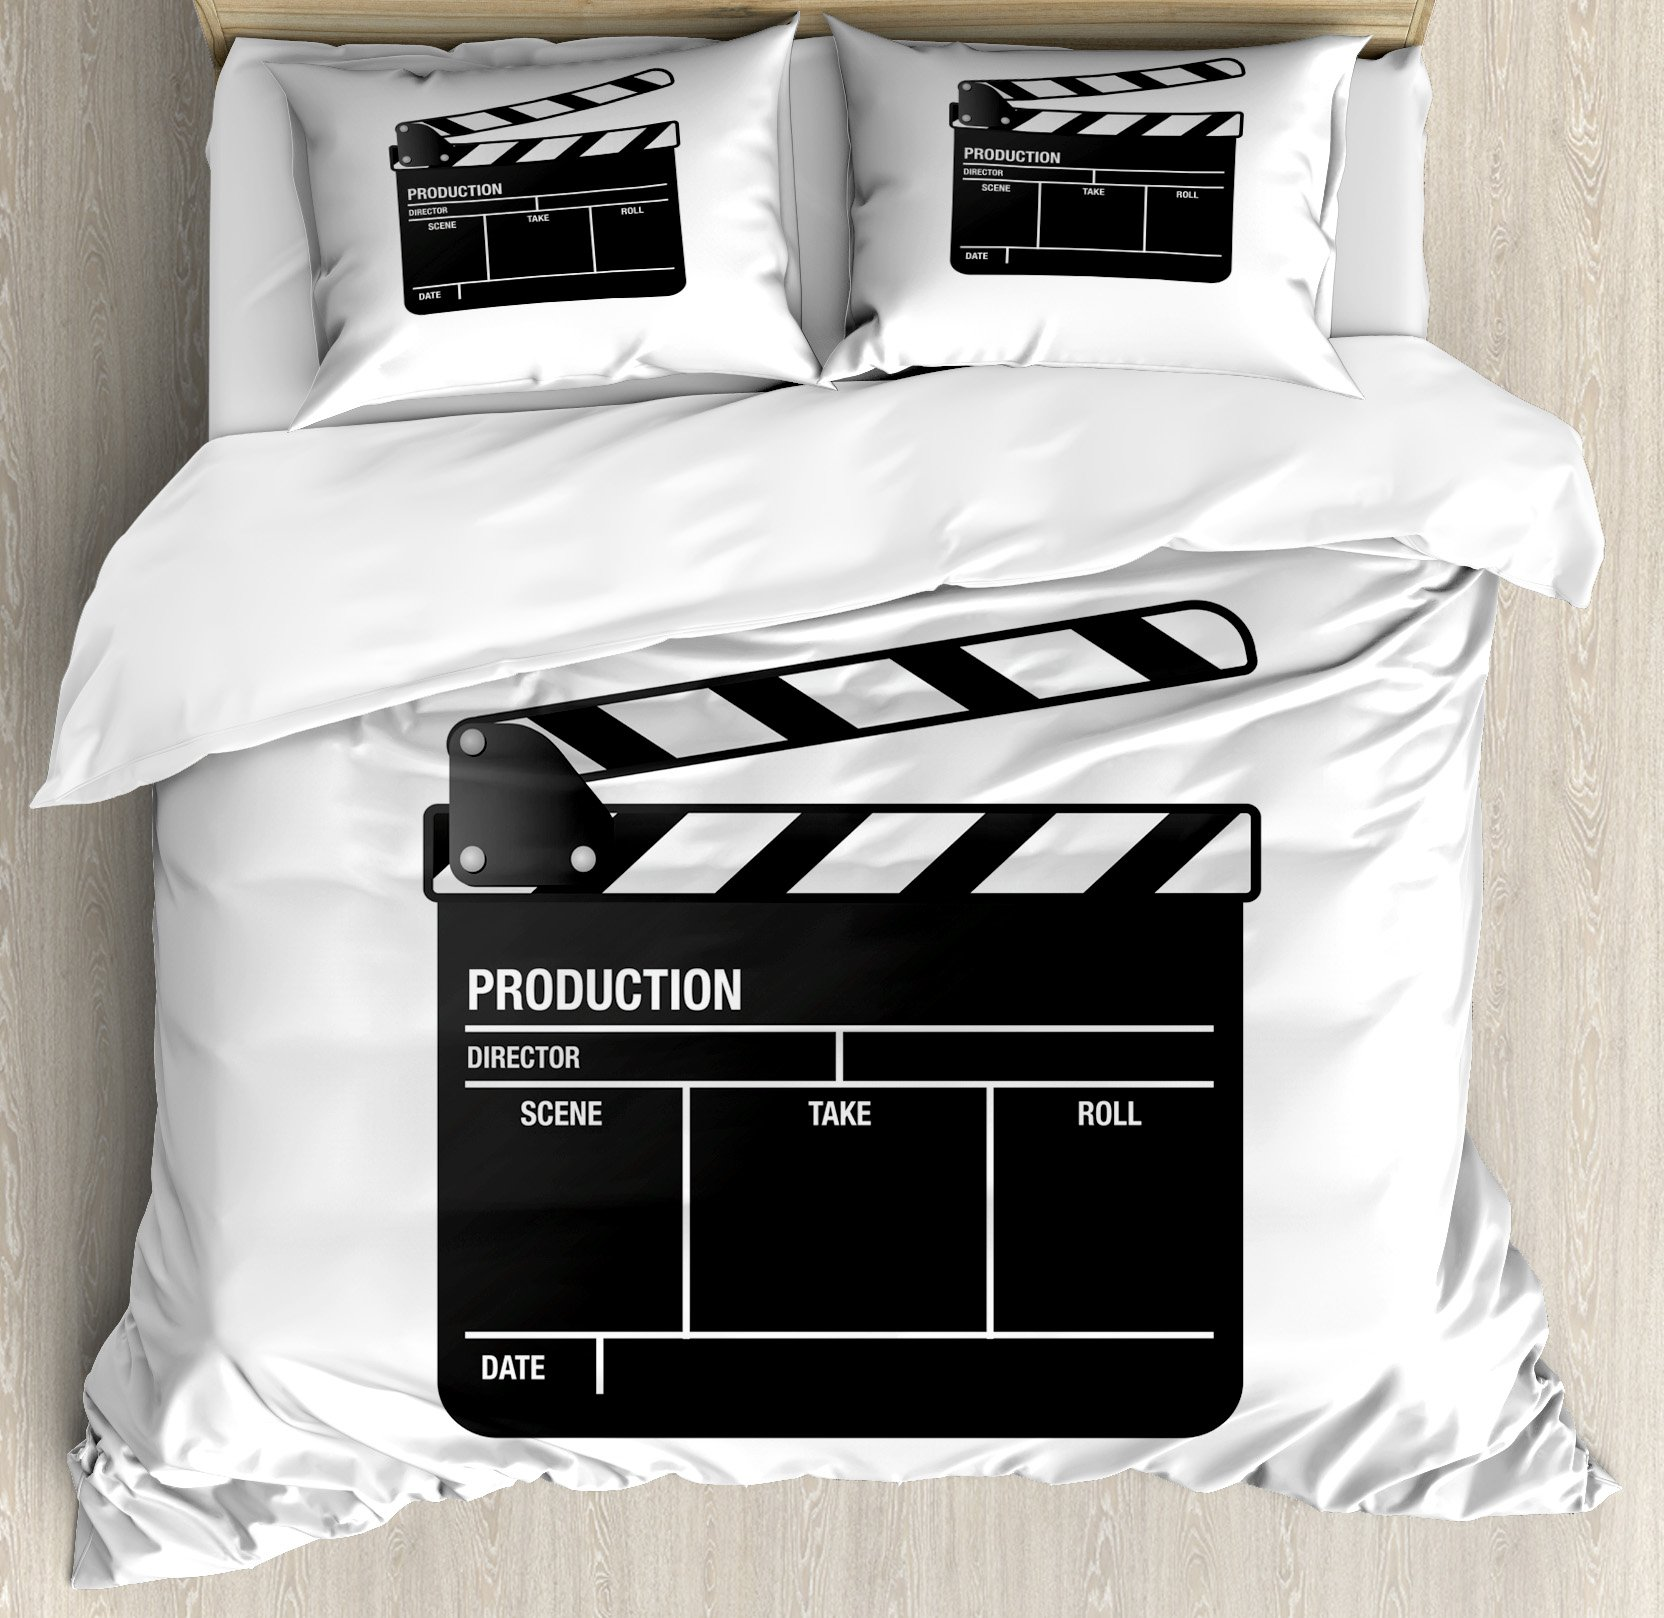 Ambesonne Movie Theater King Size Duvet Cover Set, Realistic Illustration of a Clapper Board Symbol for Film and Video Industry, Decorative 3 Piece Bedding Set with 2 Pillow Shams, Black White